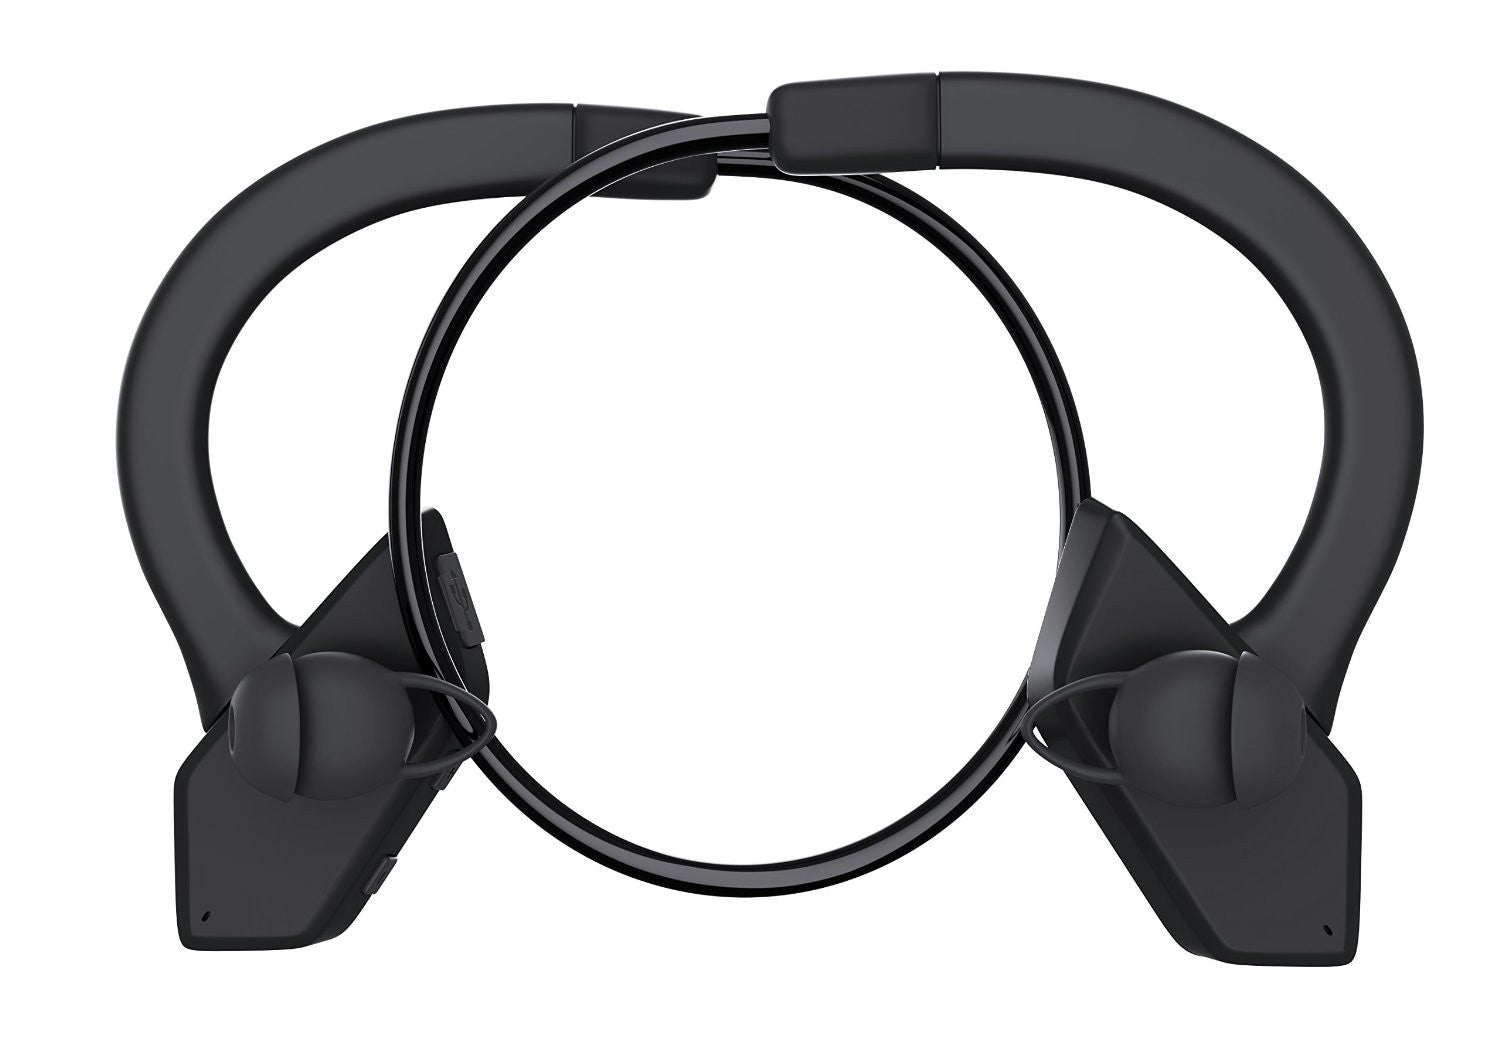 Headphones Bluetooth, Ghostek Earblades Black Sweatproof Bluetooth 4.1 Headphones Water Resistant